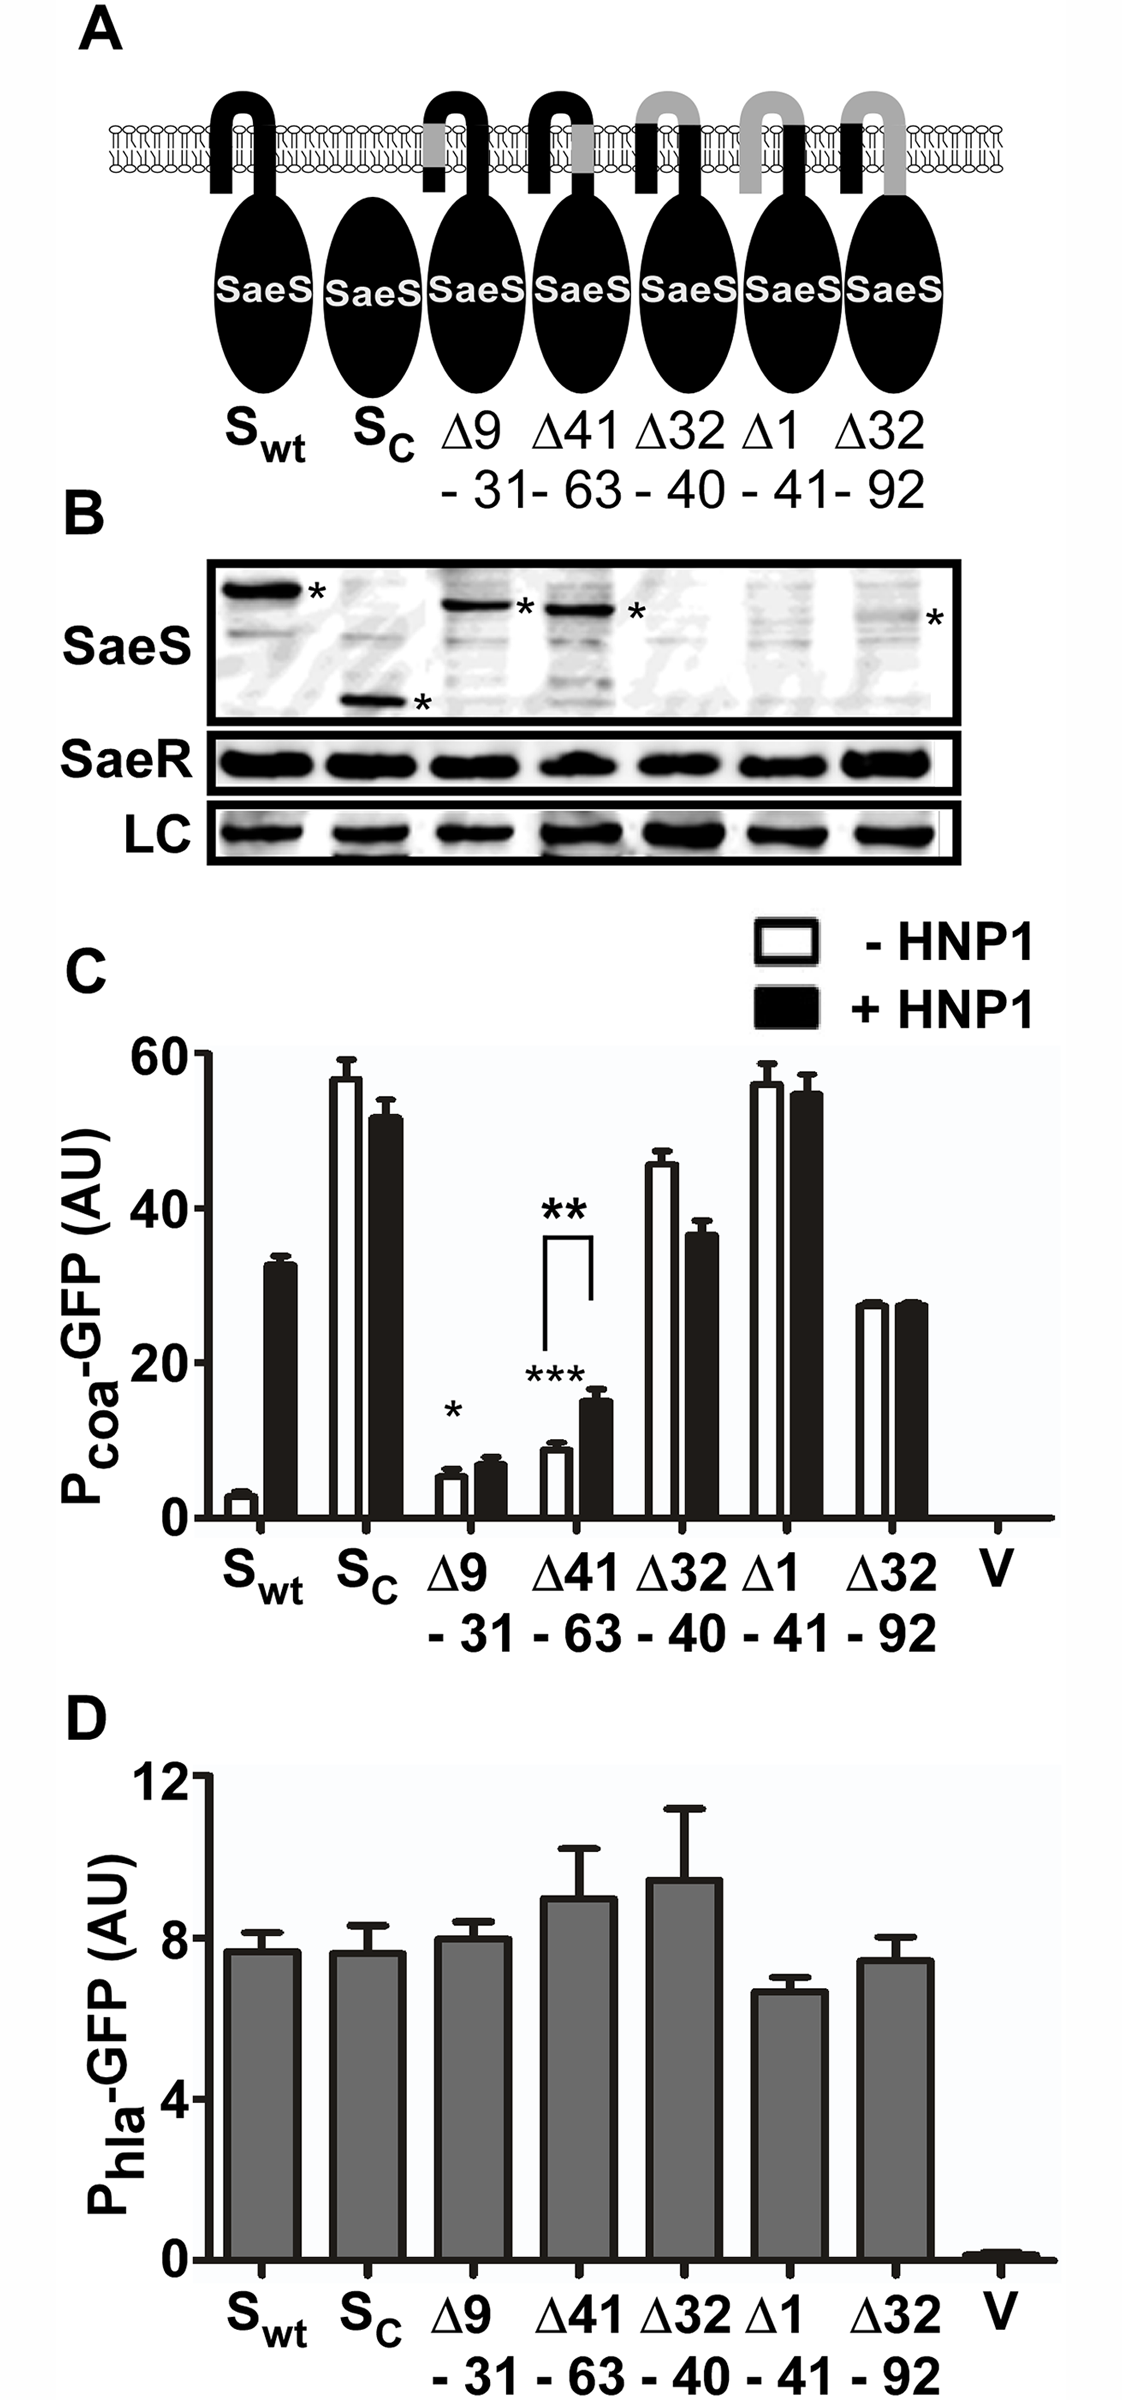 The extracytoplasmic linker peptide restrains the basal kinase activity.